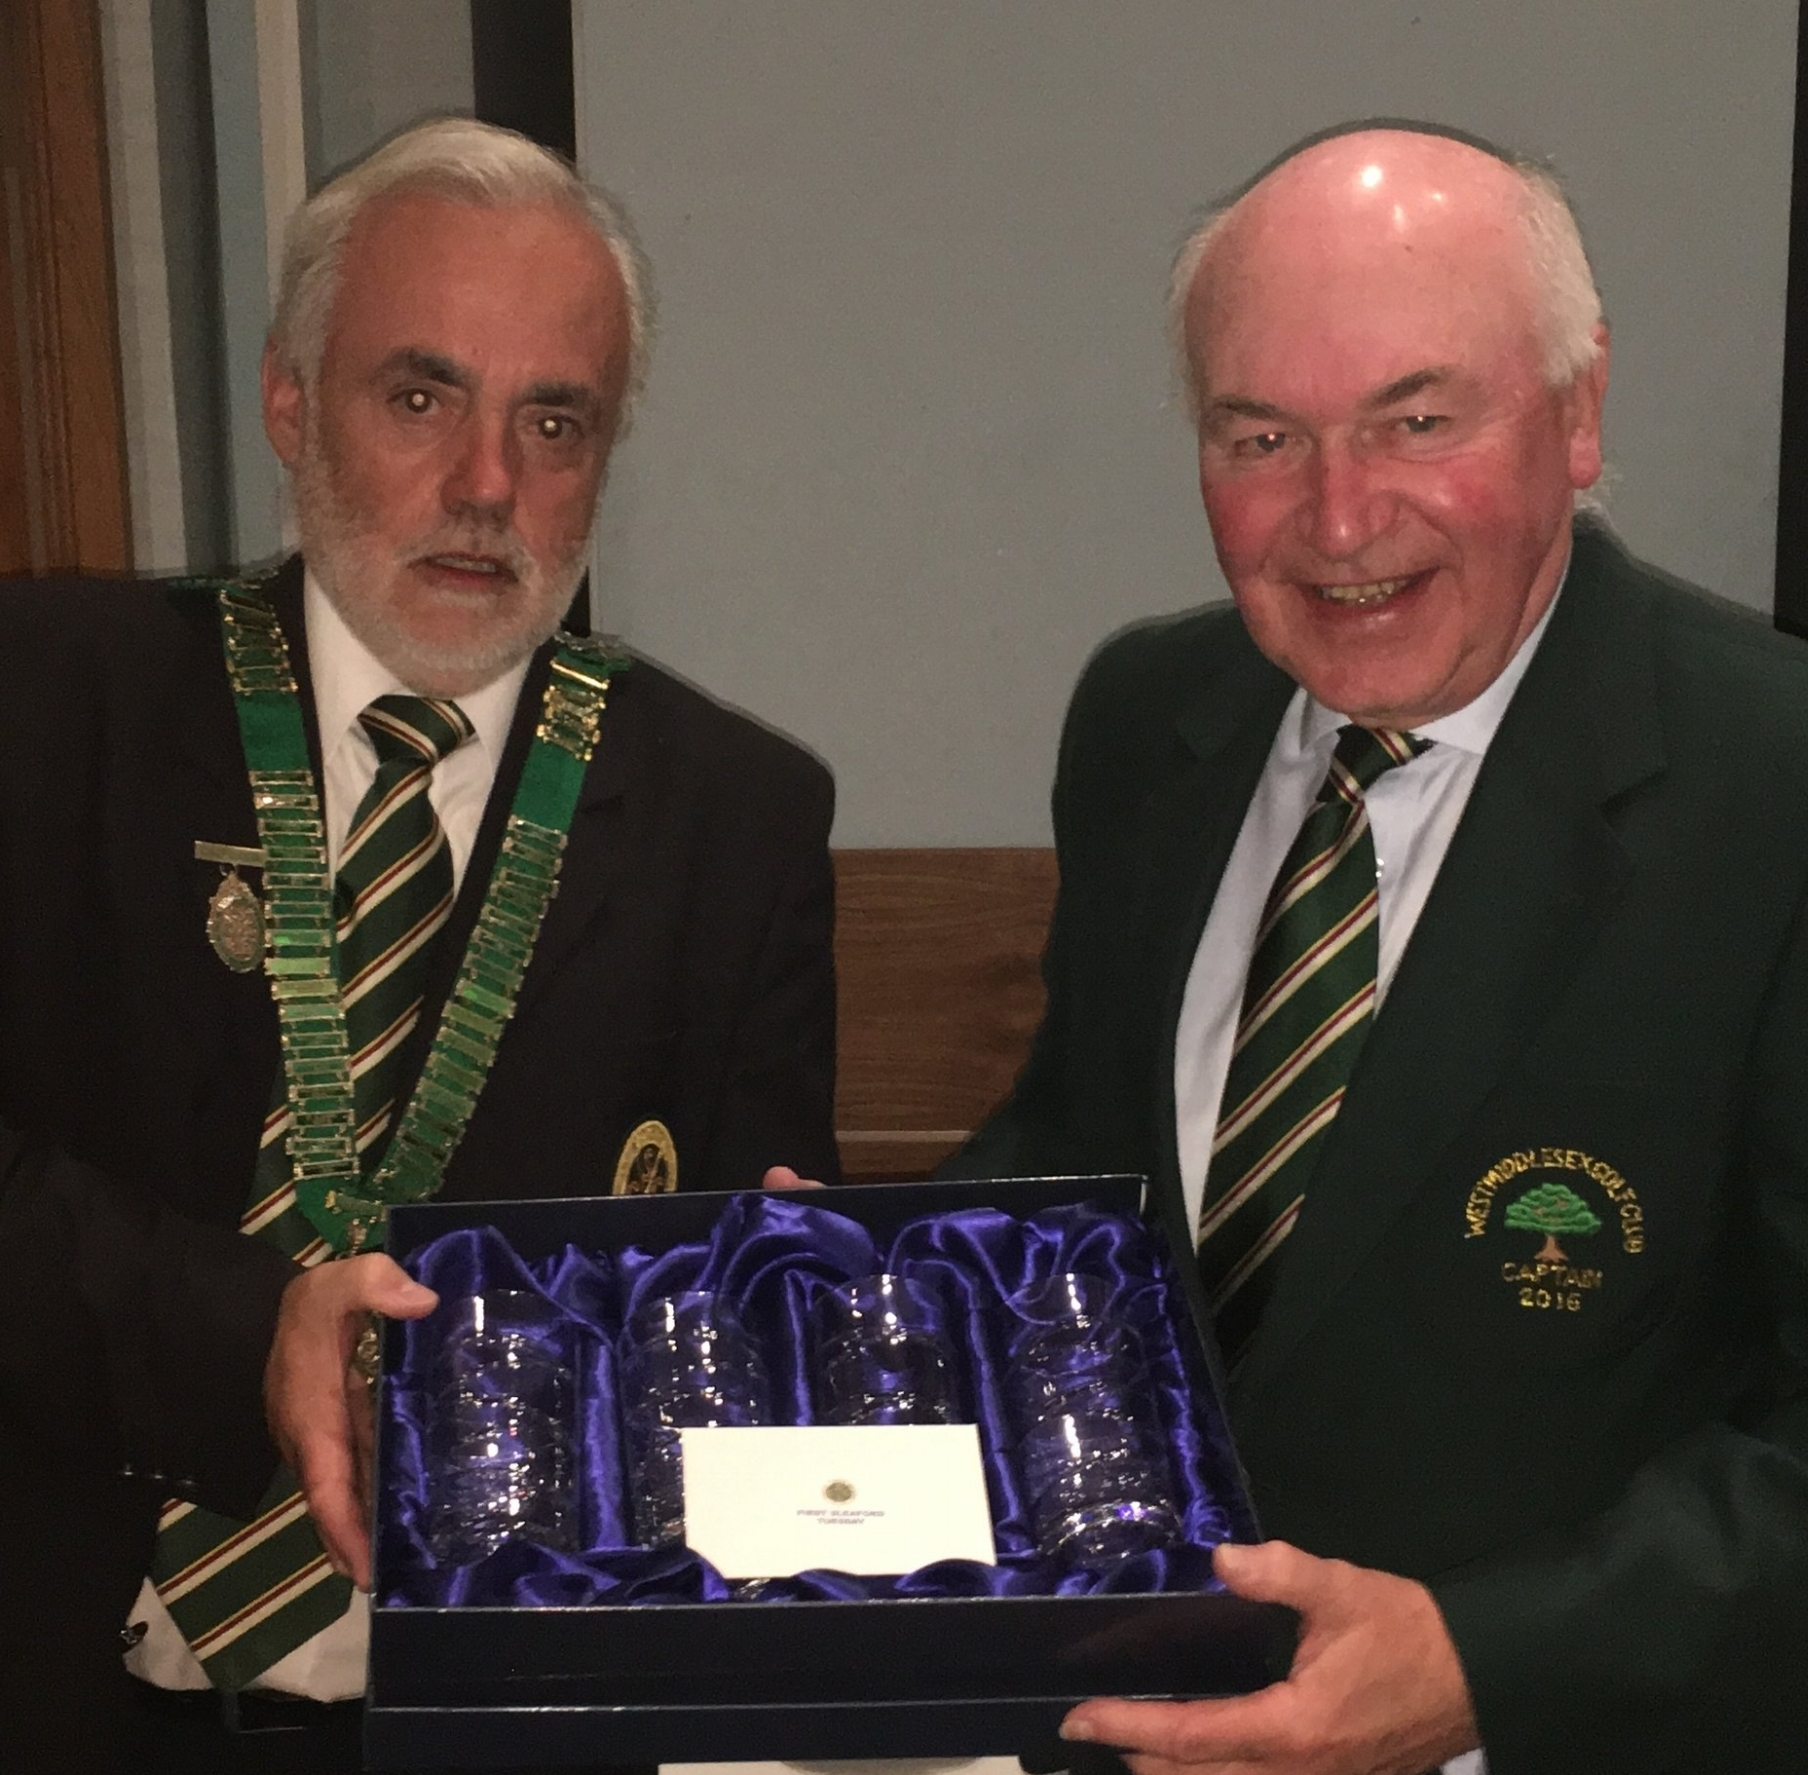 Steve McGovern West Middlesex Golf Club receiving his prize as winner at Sleaford Golf Club on Tuesday